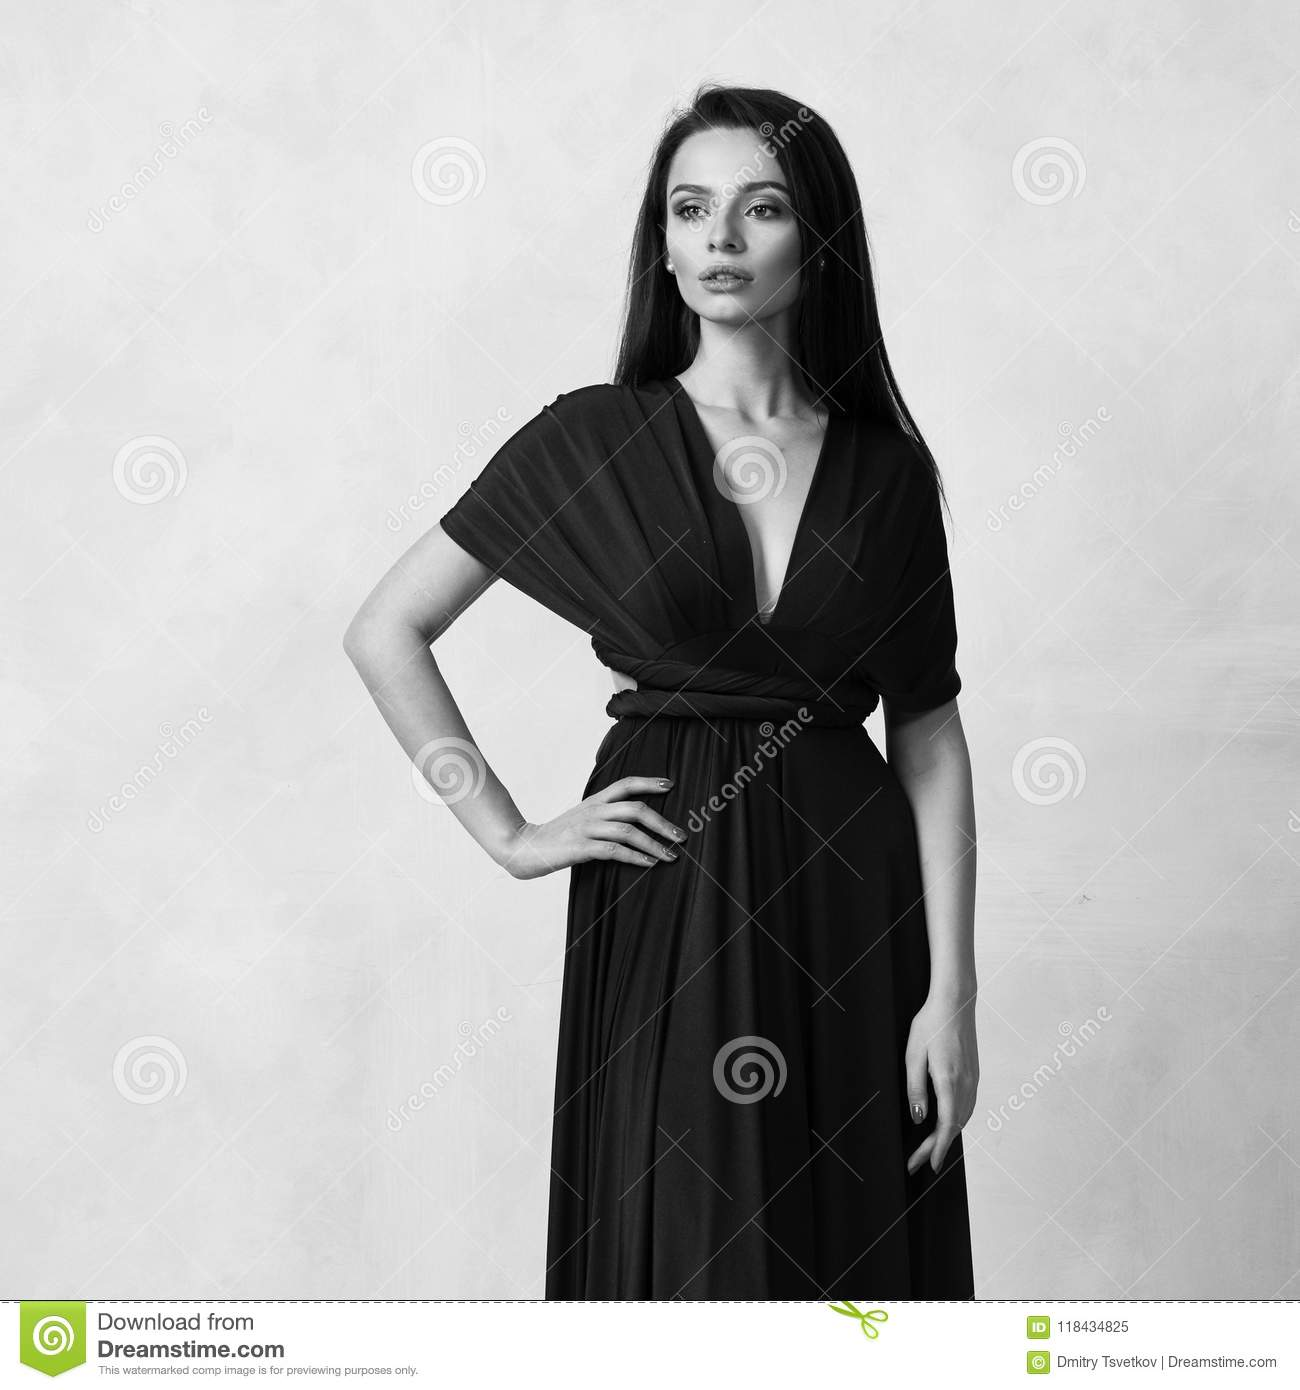 dd1119eee0 Beautiful long haired young woman dressed in stylish cherry red bandeau maxi  dress posing against white wall on background. Elegant brunette female  model ...